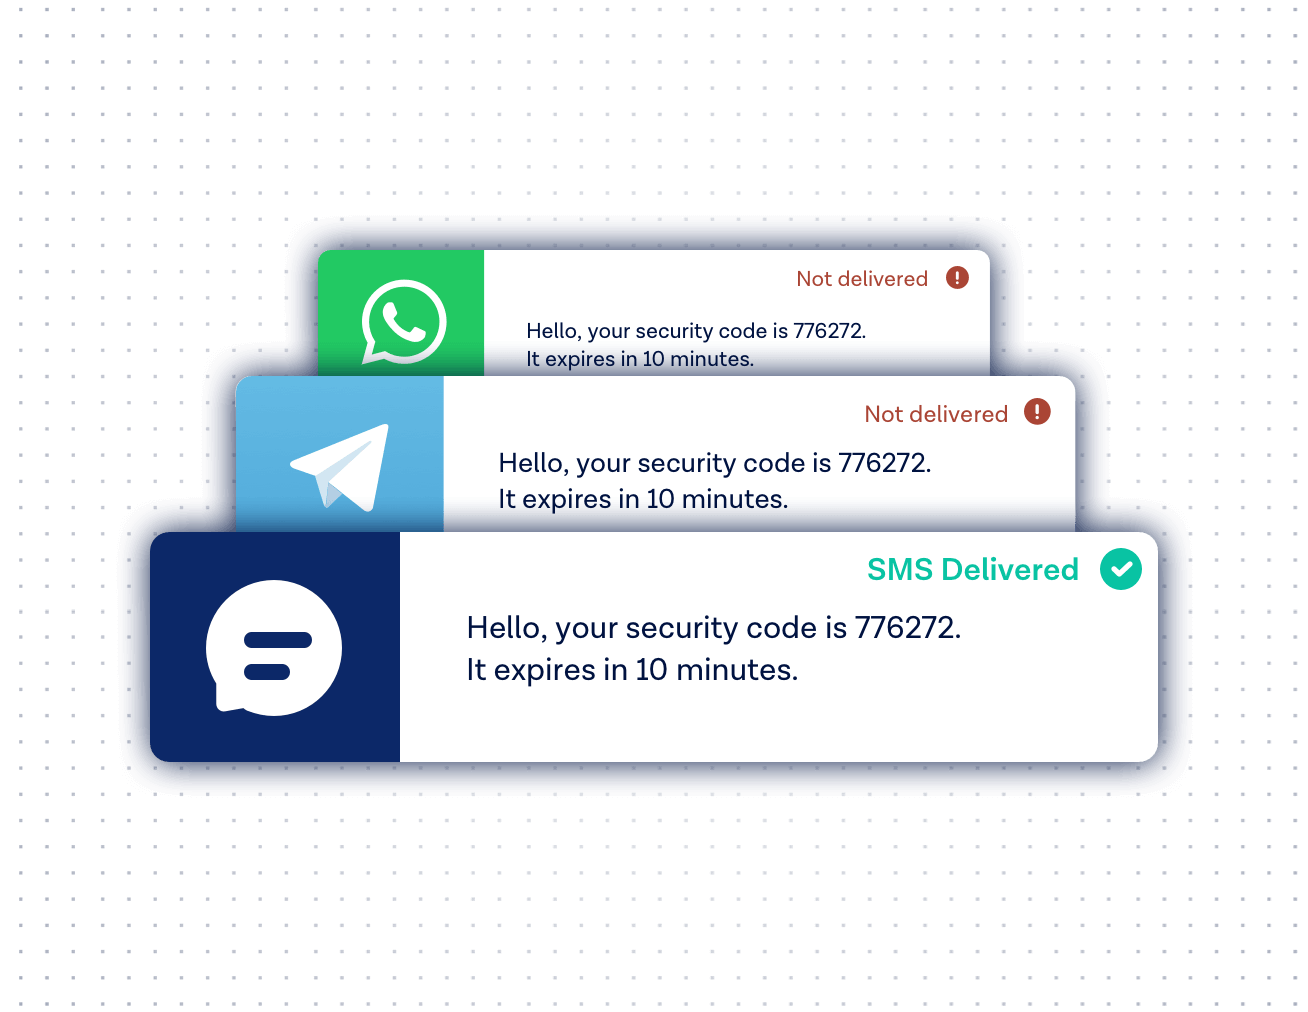 whatsapp 2fa otp authentications